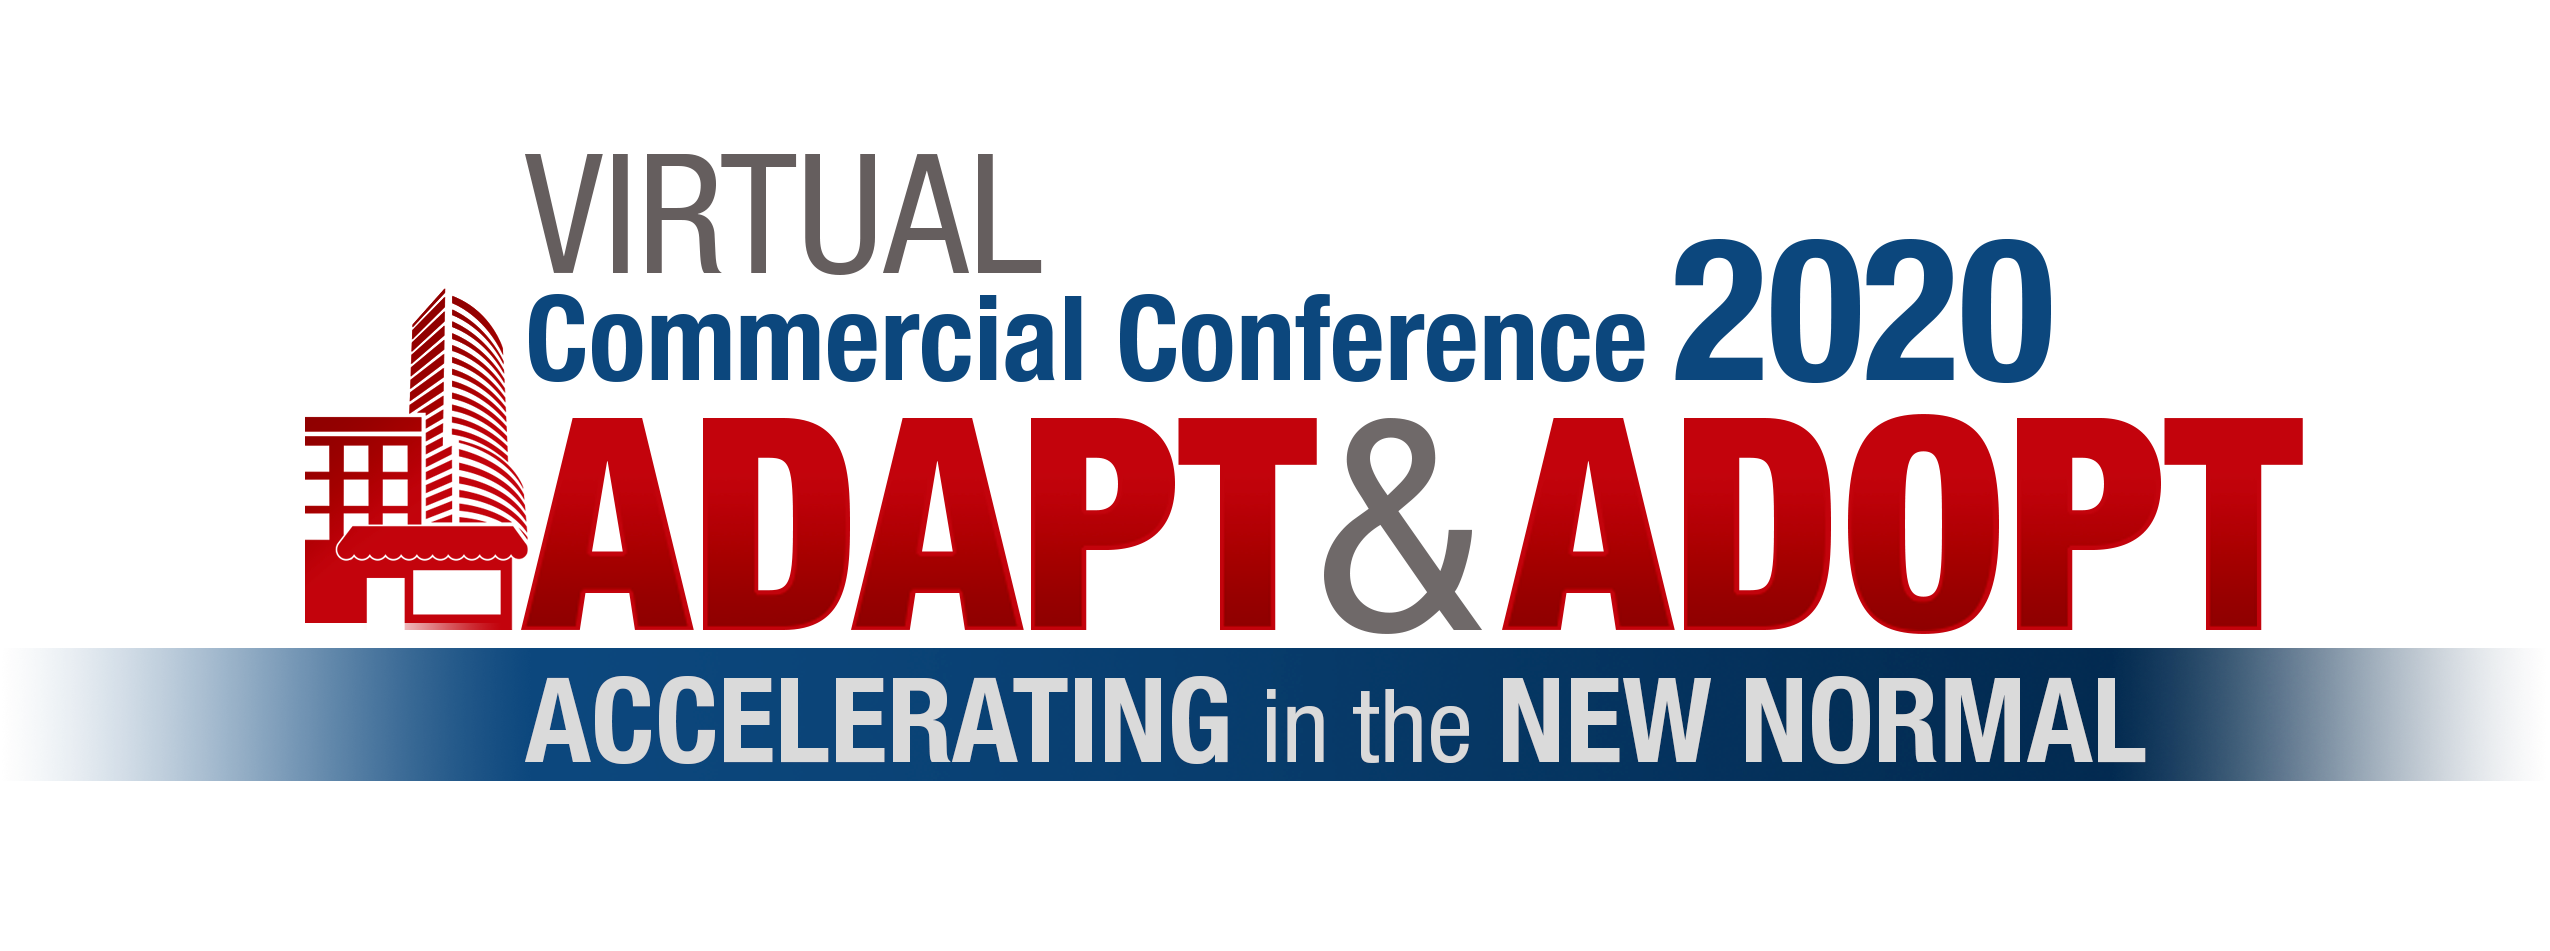 Virtua Commercial Conference - Adapt & Adopt - Accelerating in the New Normal